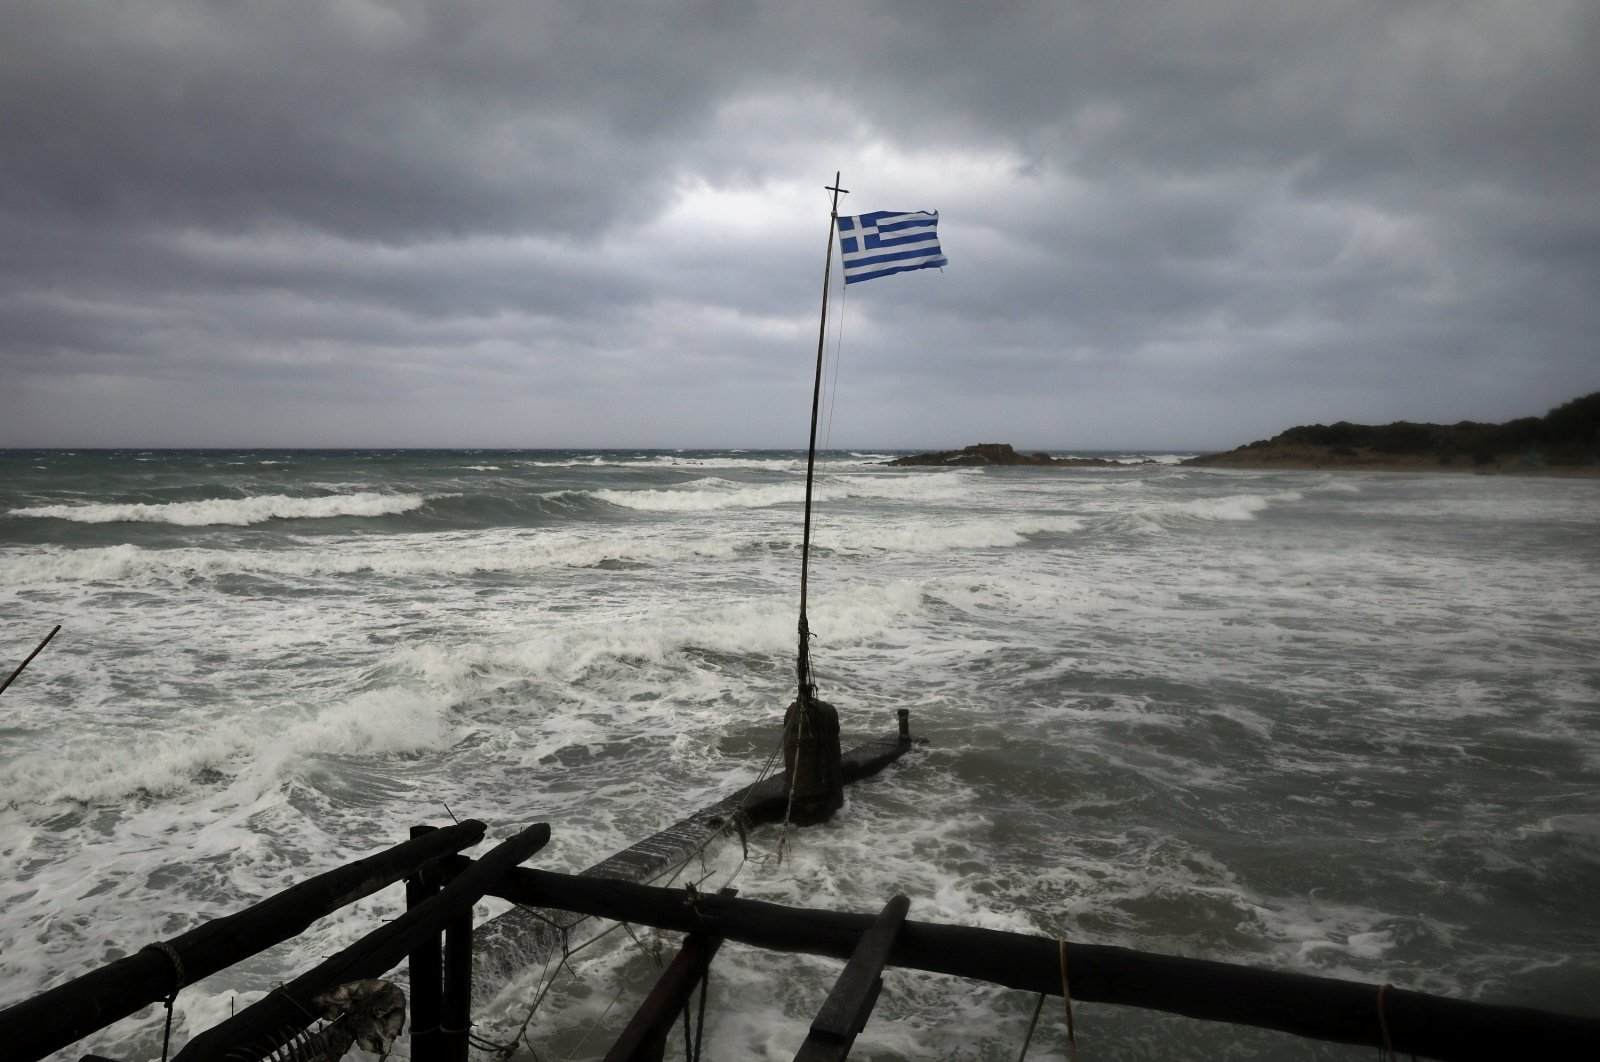 A Greek flag flutters on a beach near the town of Kyllini, as a rare storm, known as a Medicane (Mediterranean hurricane), hits western Greece, Sept. 18, 2020. (Reuters Photo)